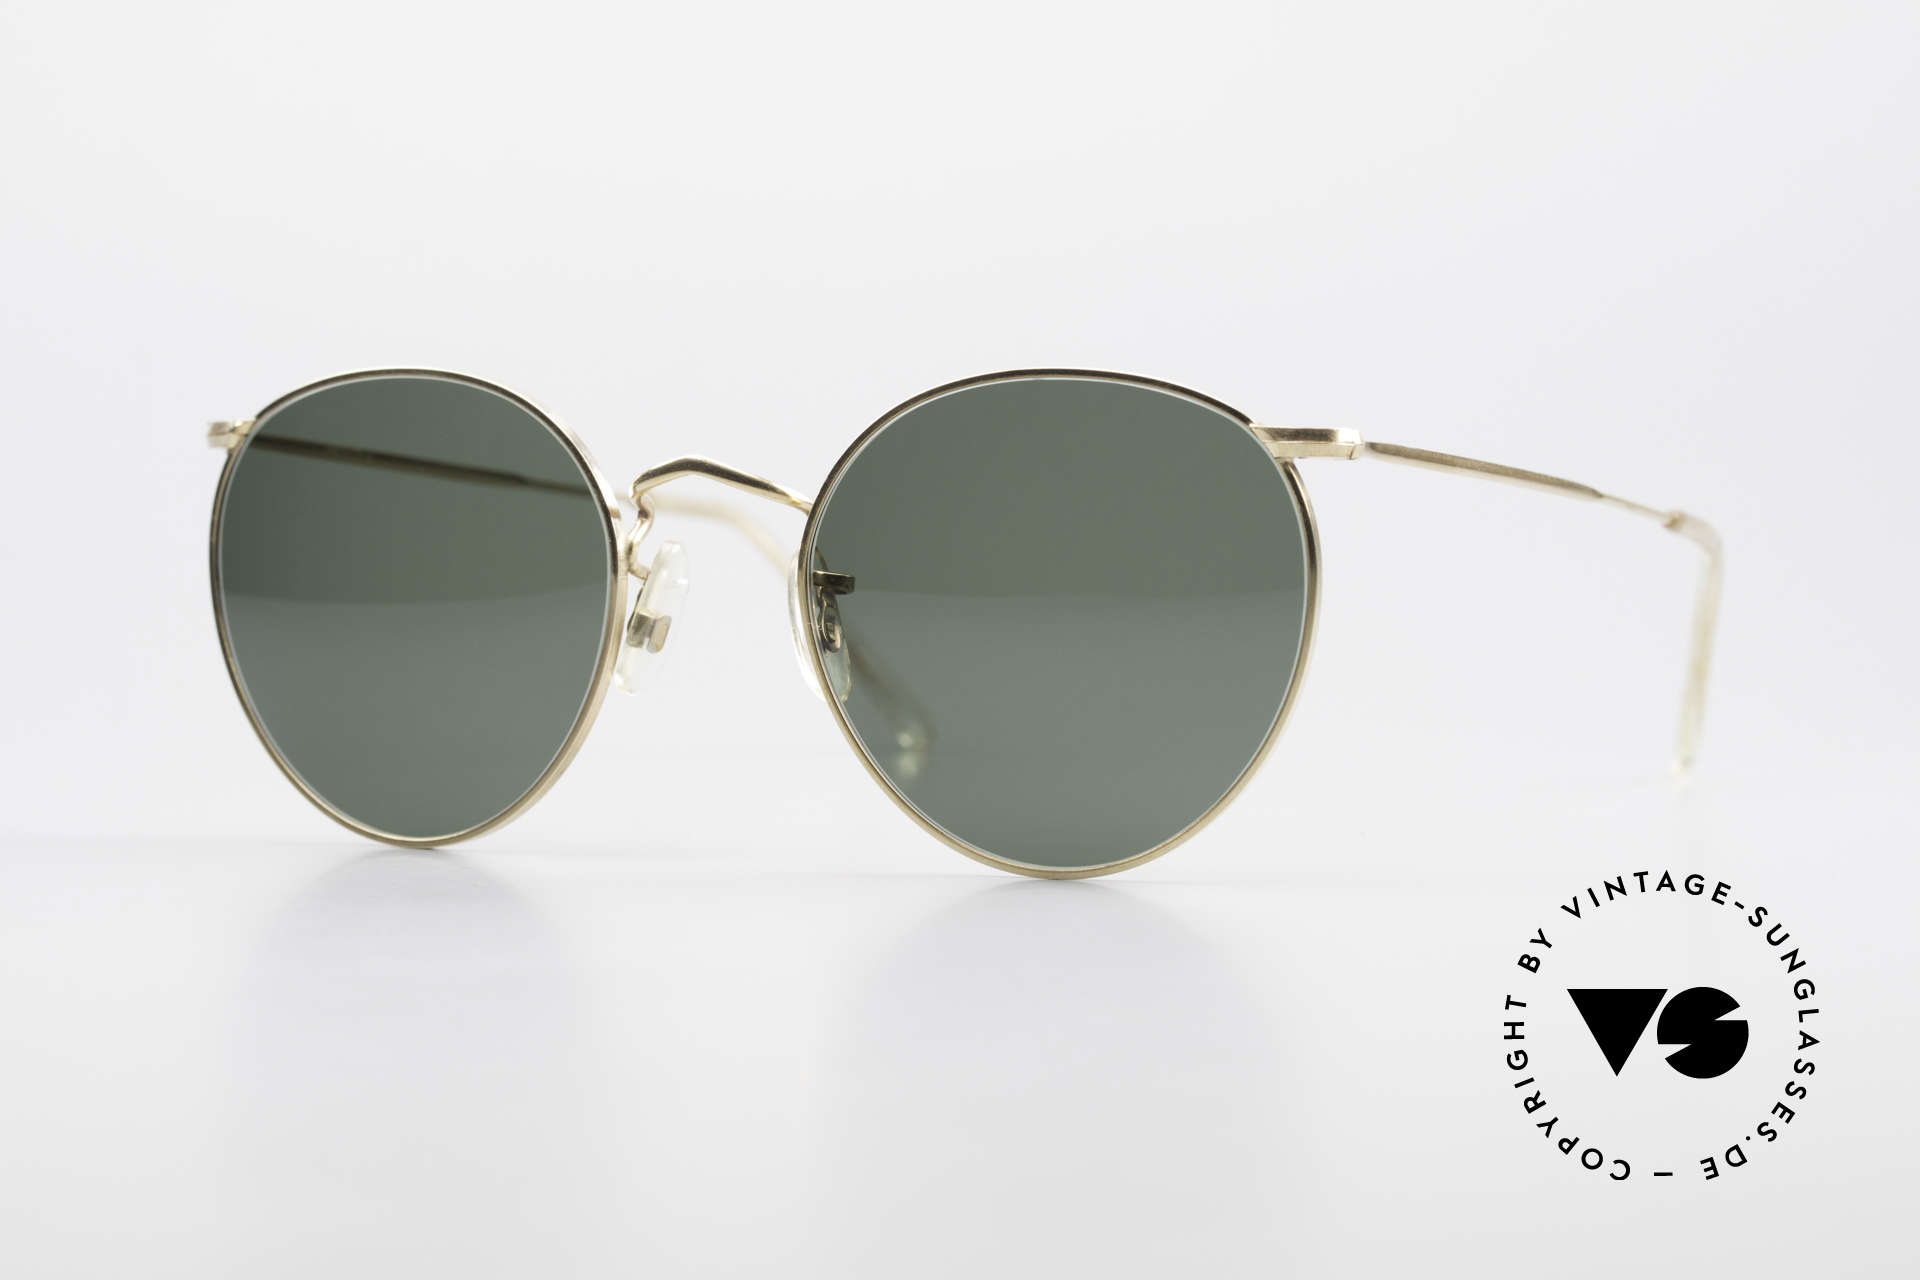 Algha Panto 47/22 Old 70's Gold Filled Frame, old ALGHA vintage frame in S to M size 47-22, Made for Men and Women